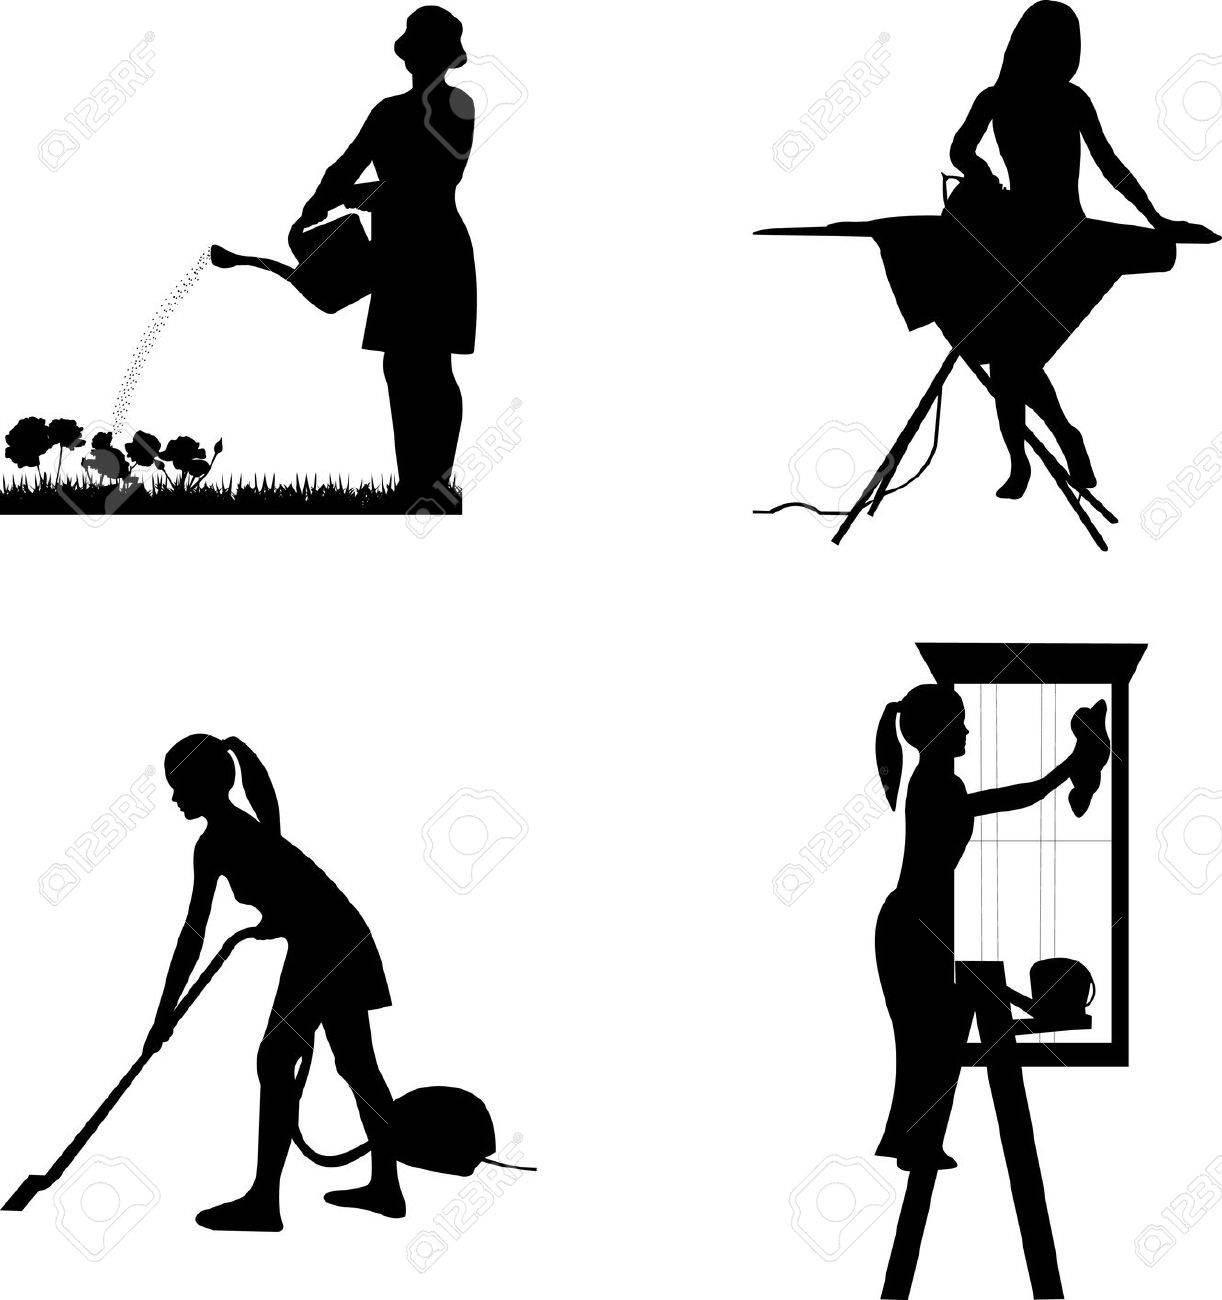 Girls And Housewives In Different Jobs Silhouette Royalty Free ...